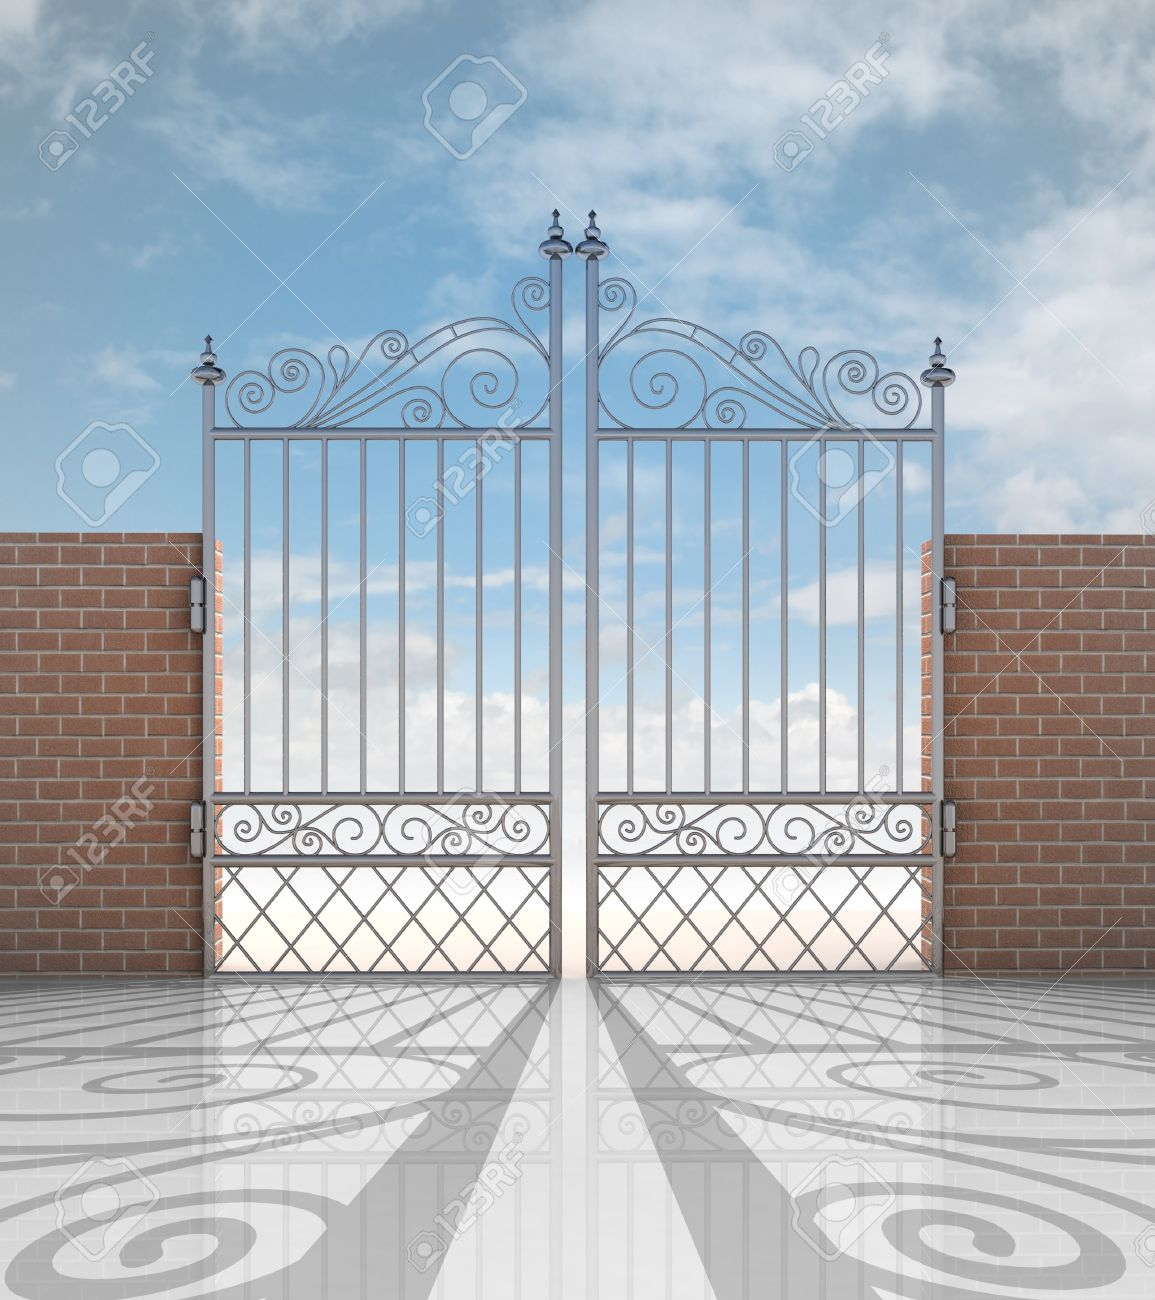 closed iron gate in strong brick wall with shadow illustration Stock Photo - 19250513